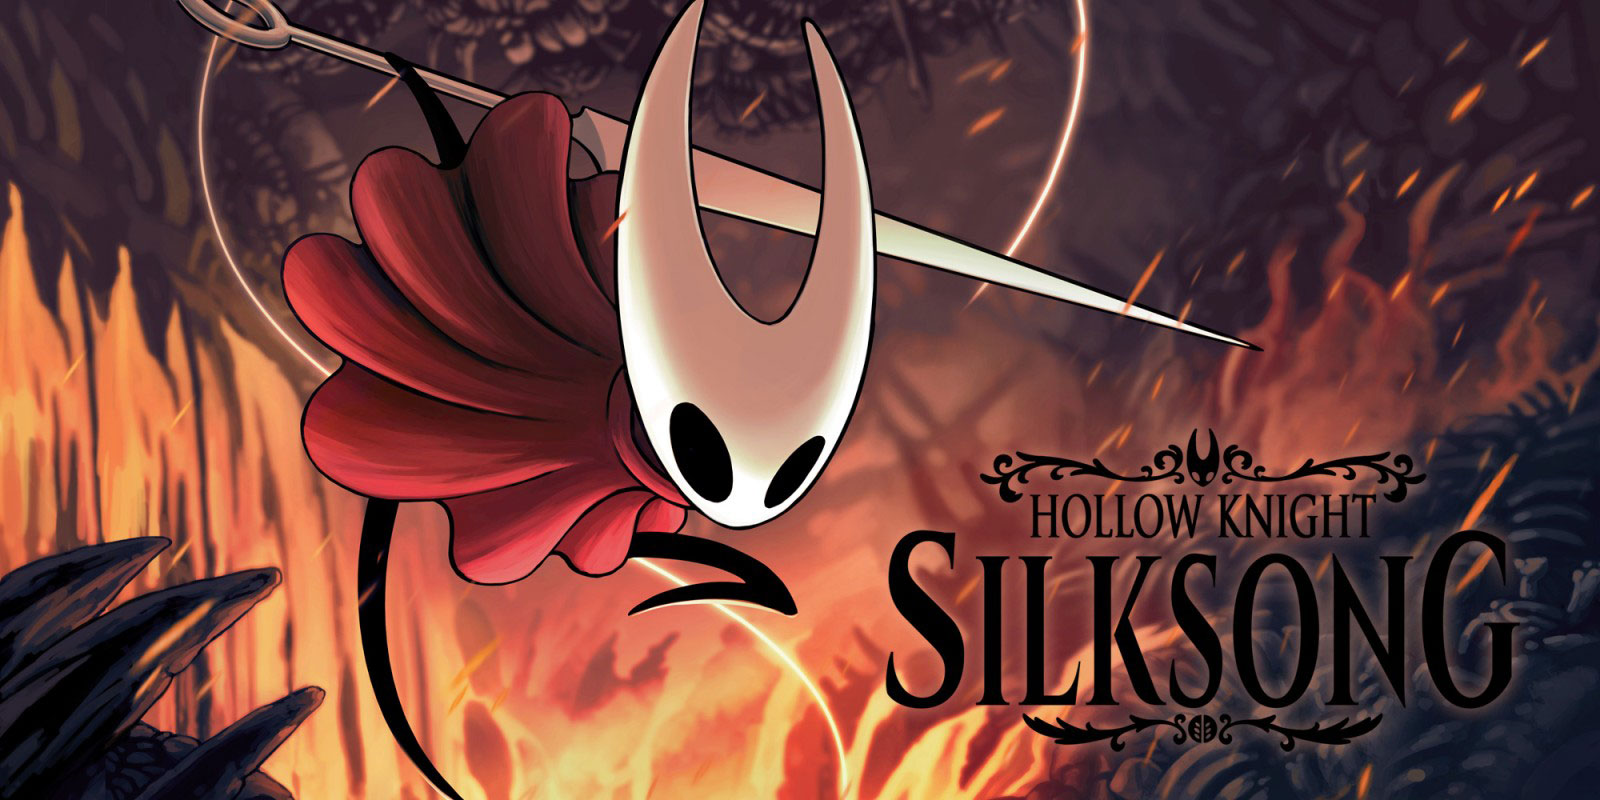 Hollow Knight: Silksong poster